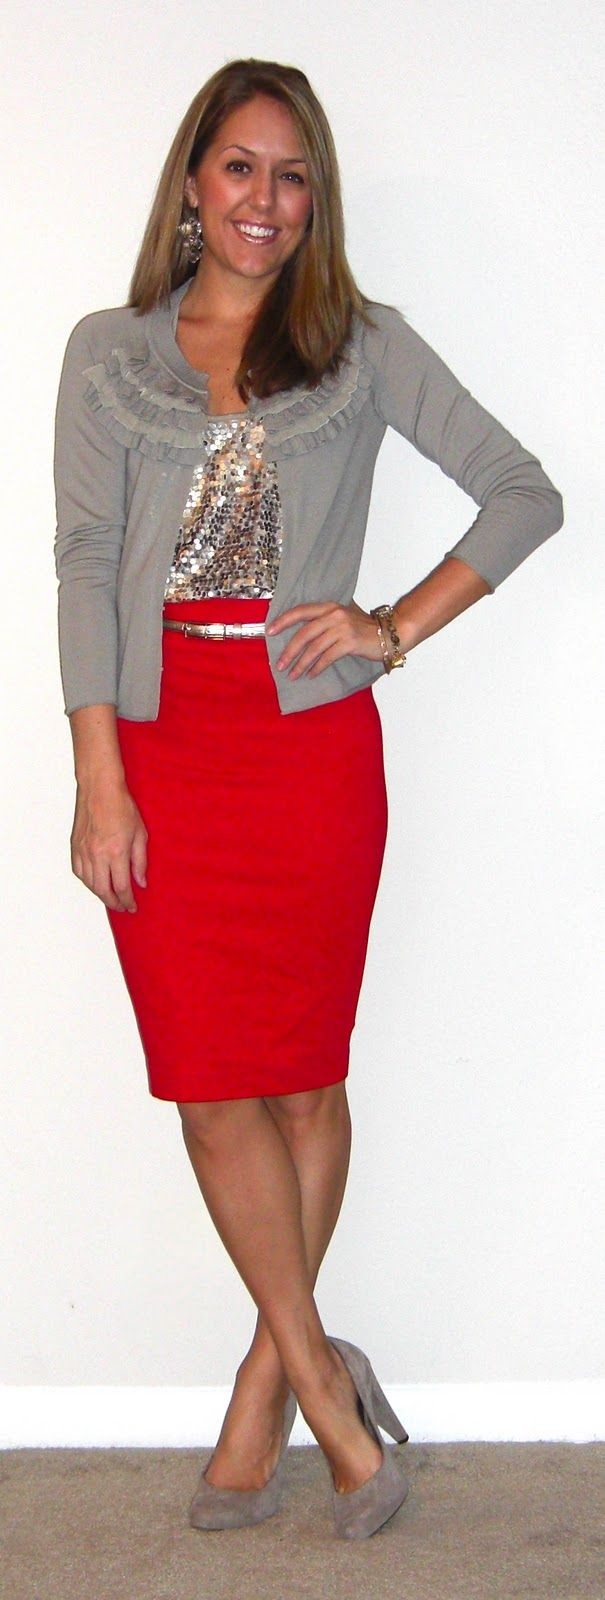 Christmas dress ideas for office party - J Said What I Wore To Christmas Eve Church Service I Say Fun